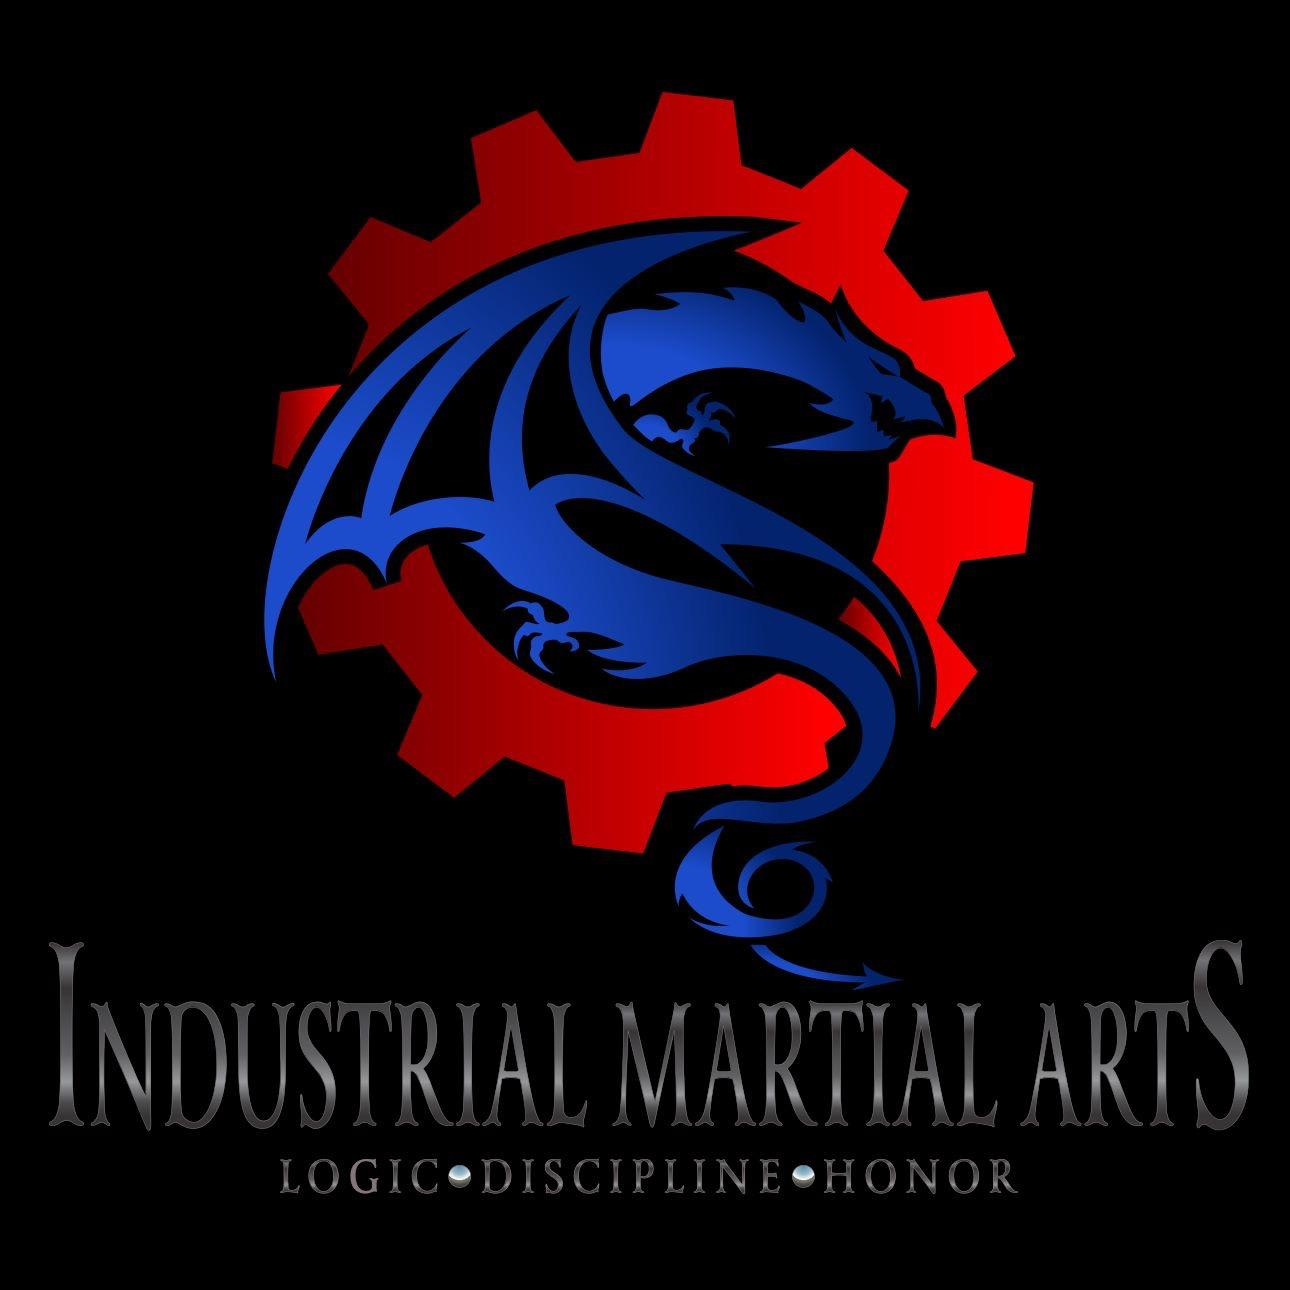 Industrial Martial Arts